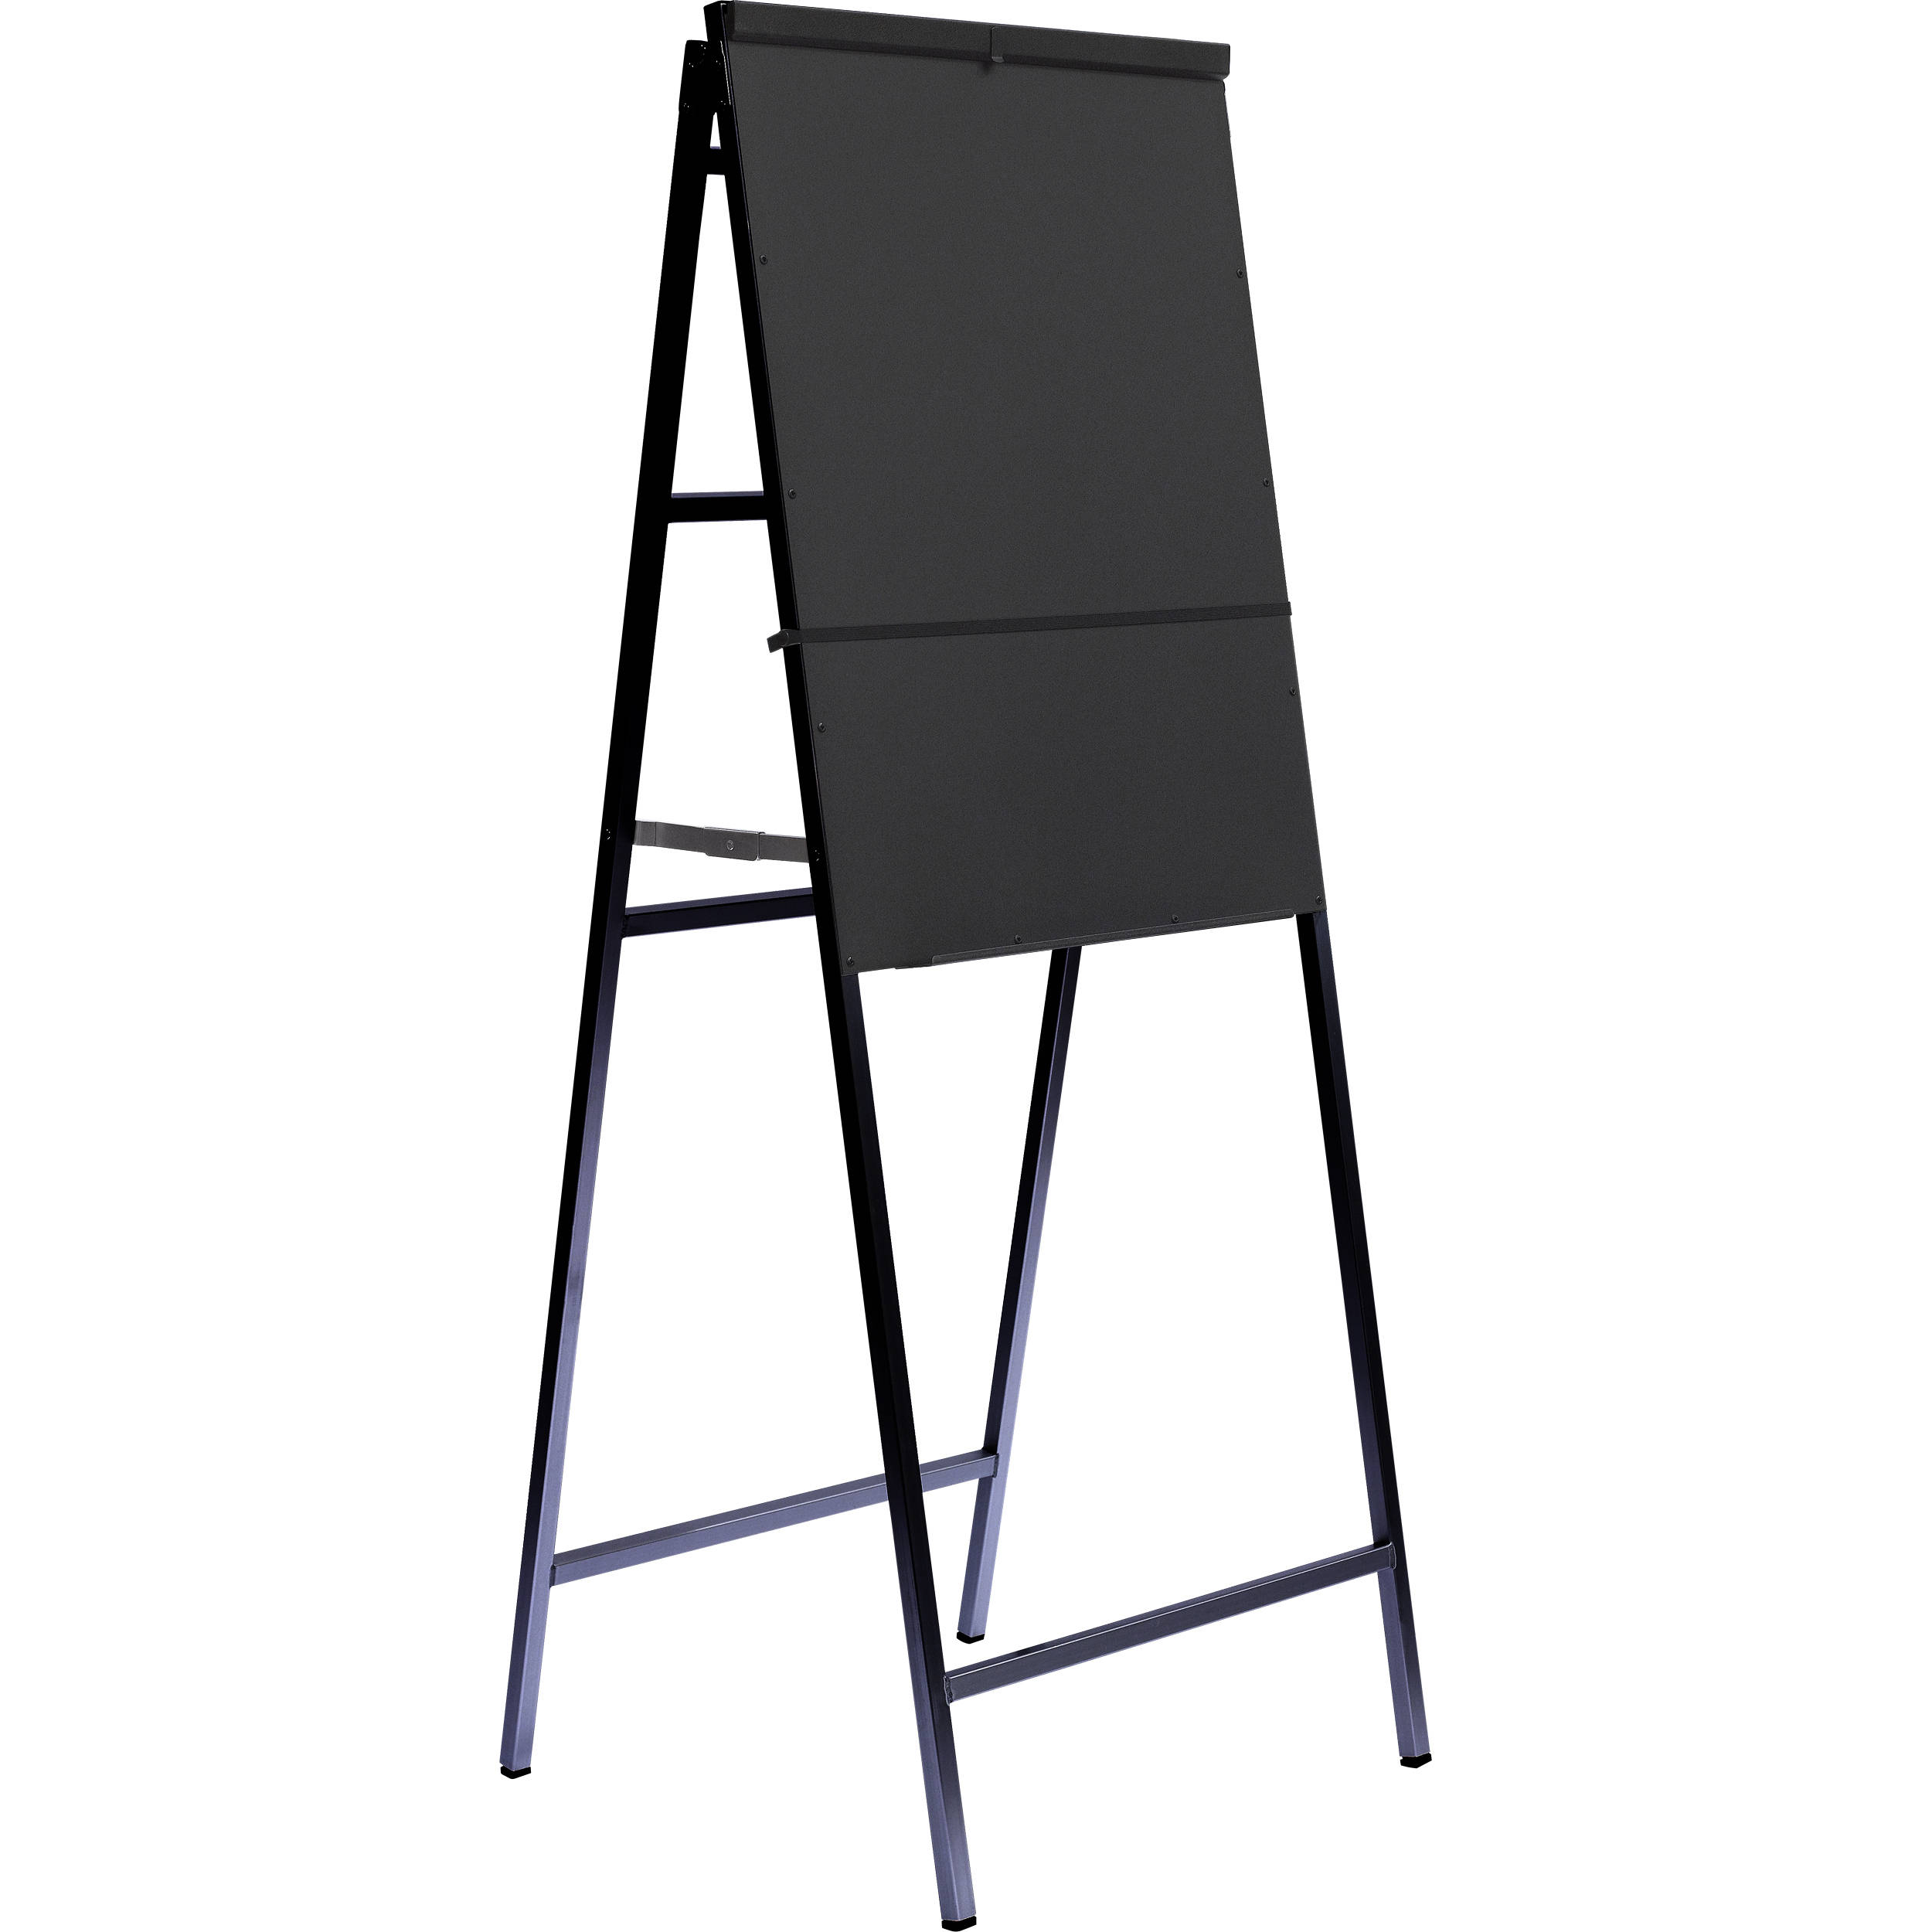 Draper DR890 A-Frame Heavy-Duty Easel (Black) 350070 B&H Photo